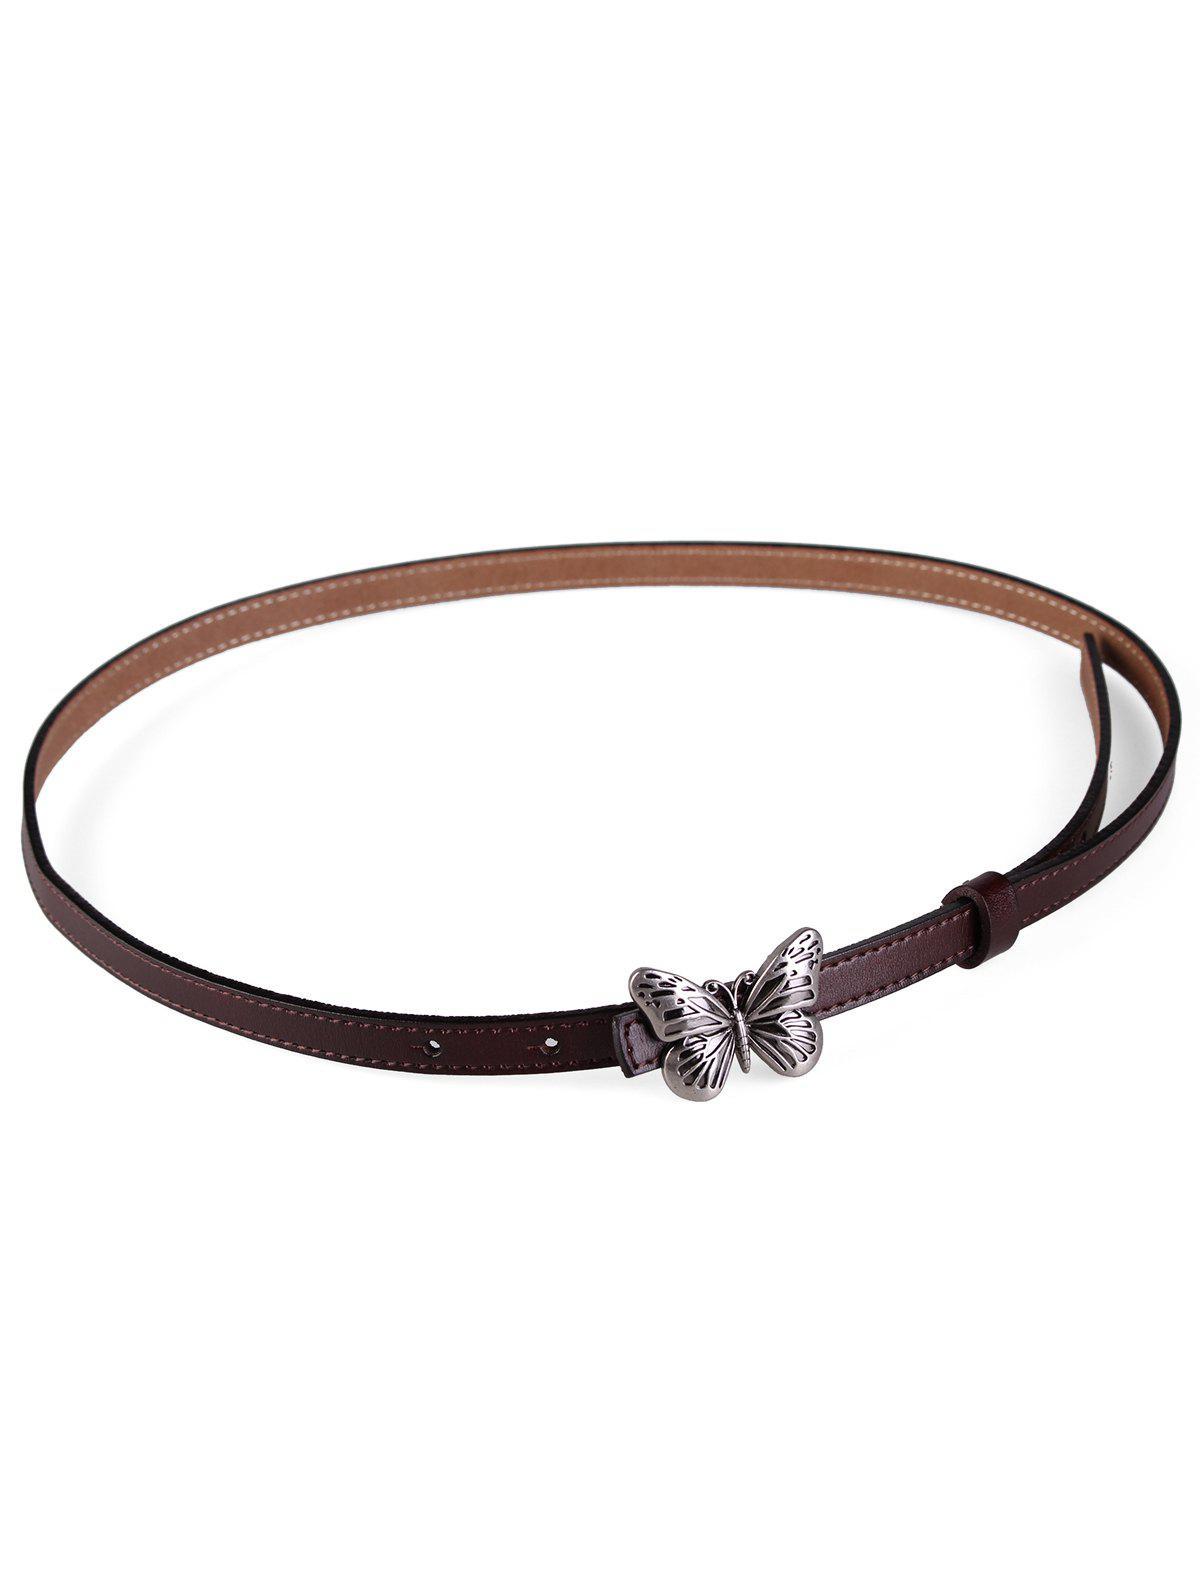 Metal Butterfly Buckle Artificial Leather Skinny Belt - COFFEE